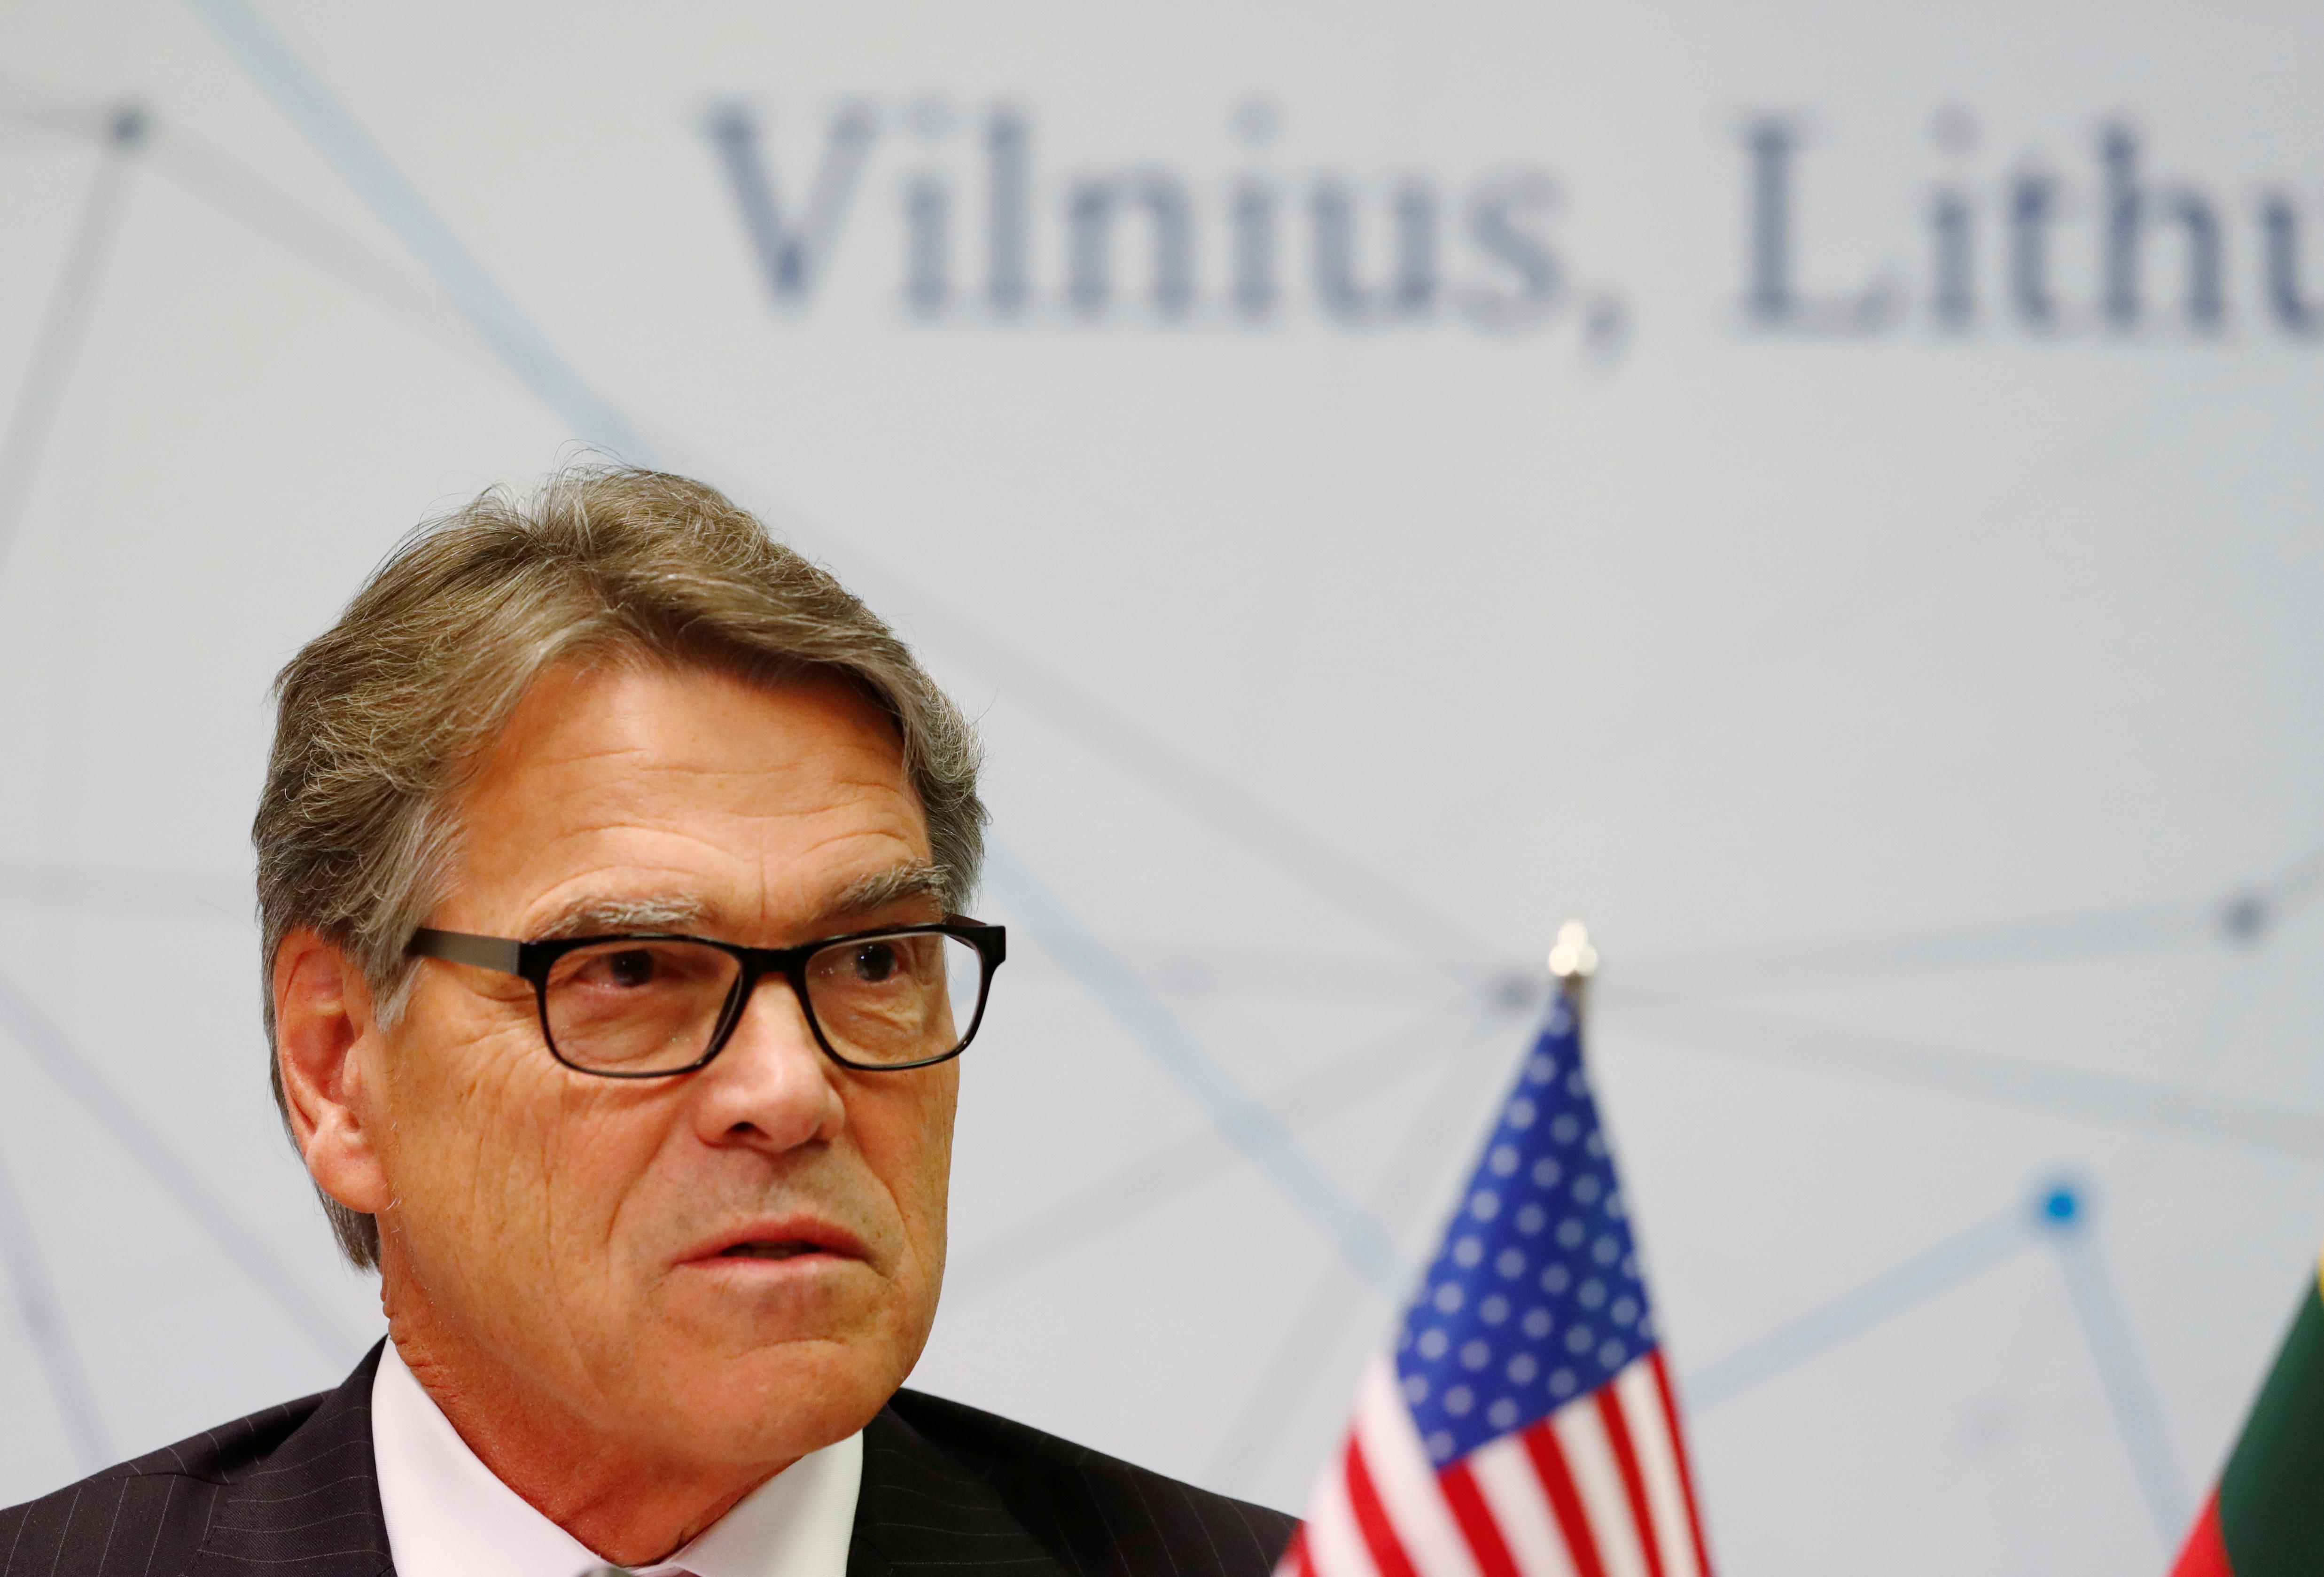 U.S. energy chief says departure has 'absolutely nothing' to do...